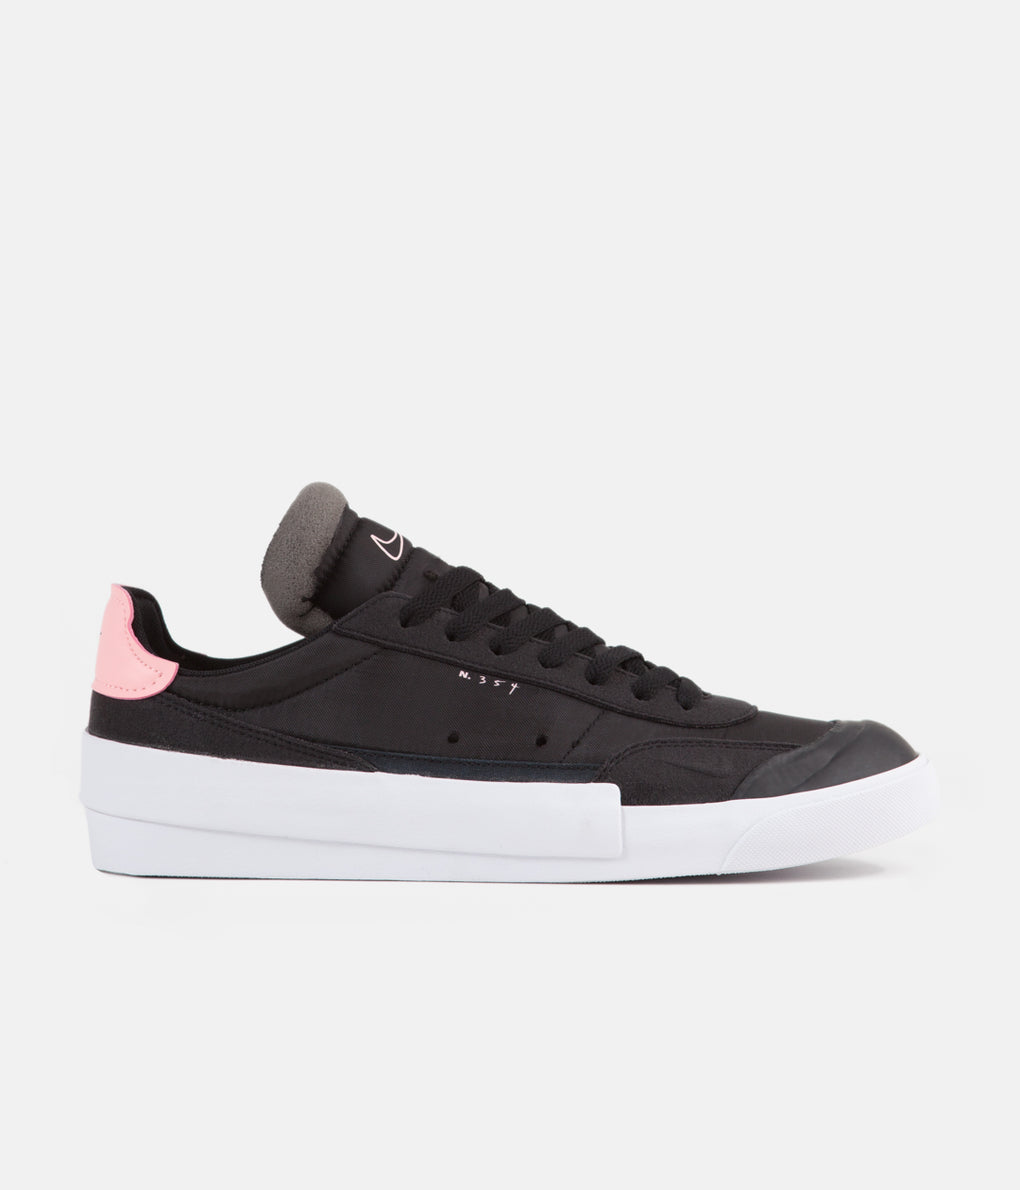 Nike Drop Type LX Shoes - Black / Pink Tint - White - Zinnia